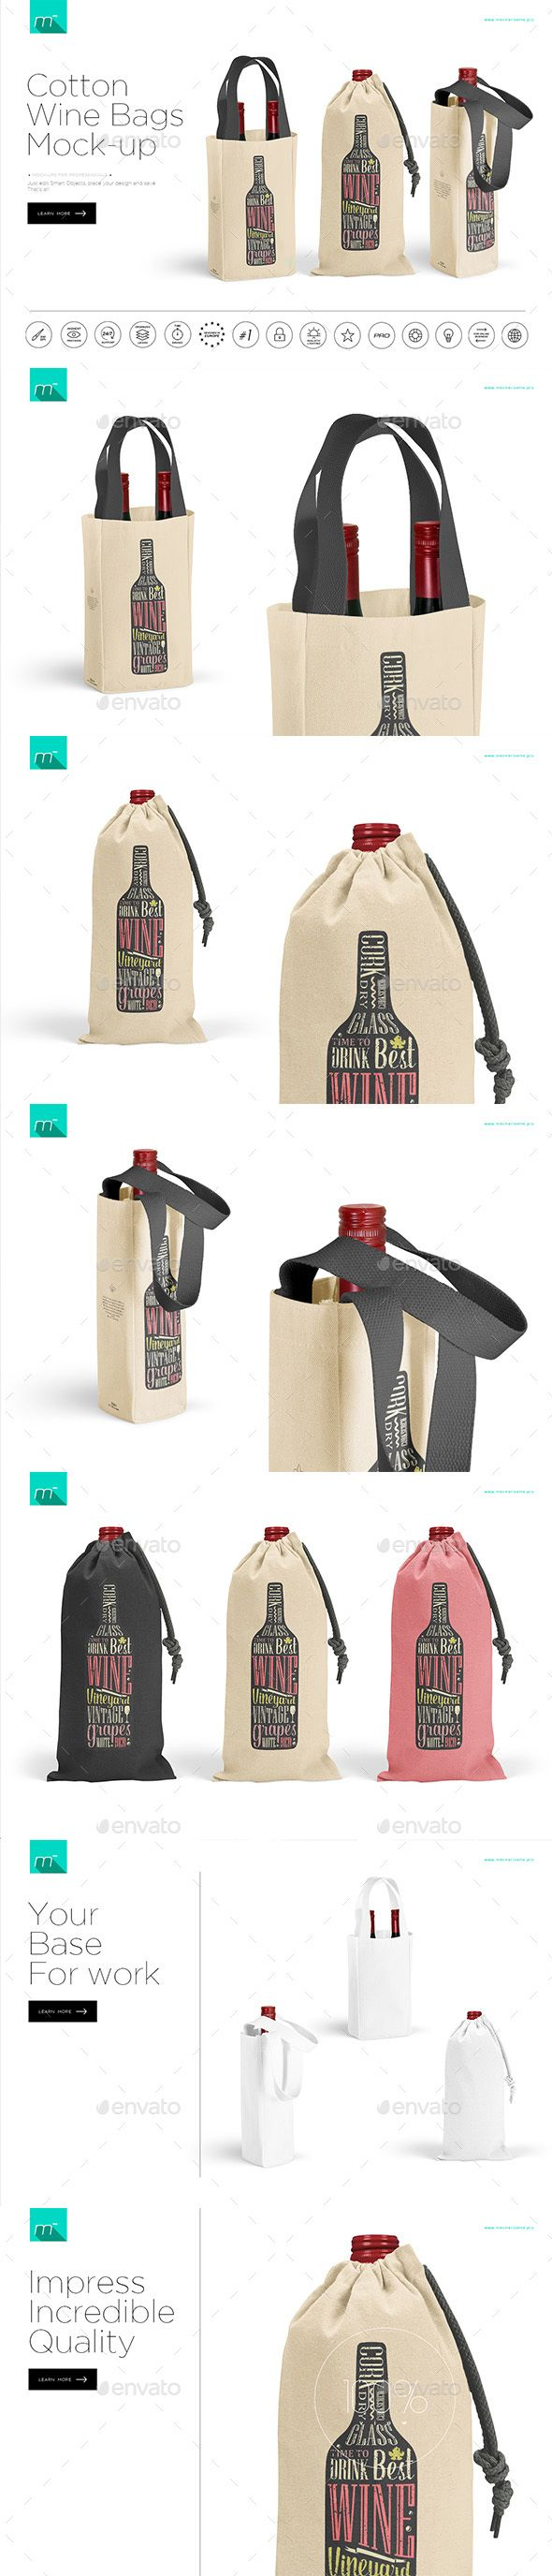 Cotton Wine Bags Mock Up Psd Template Only Available Here